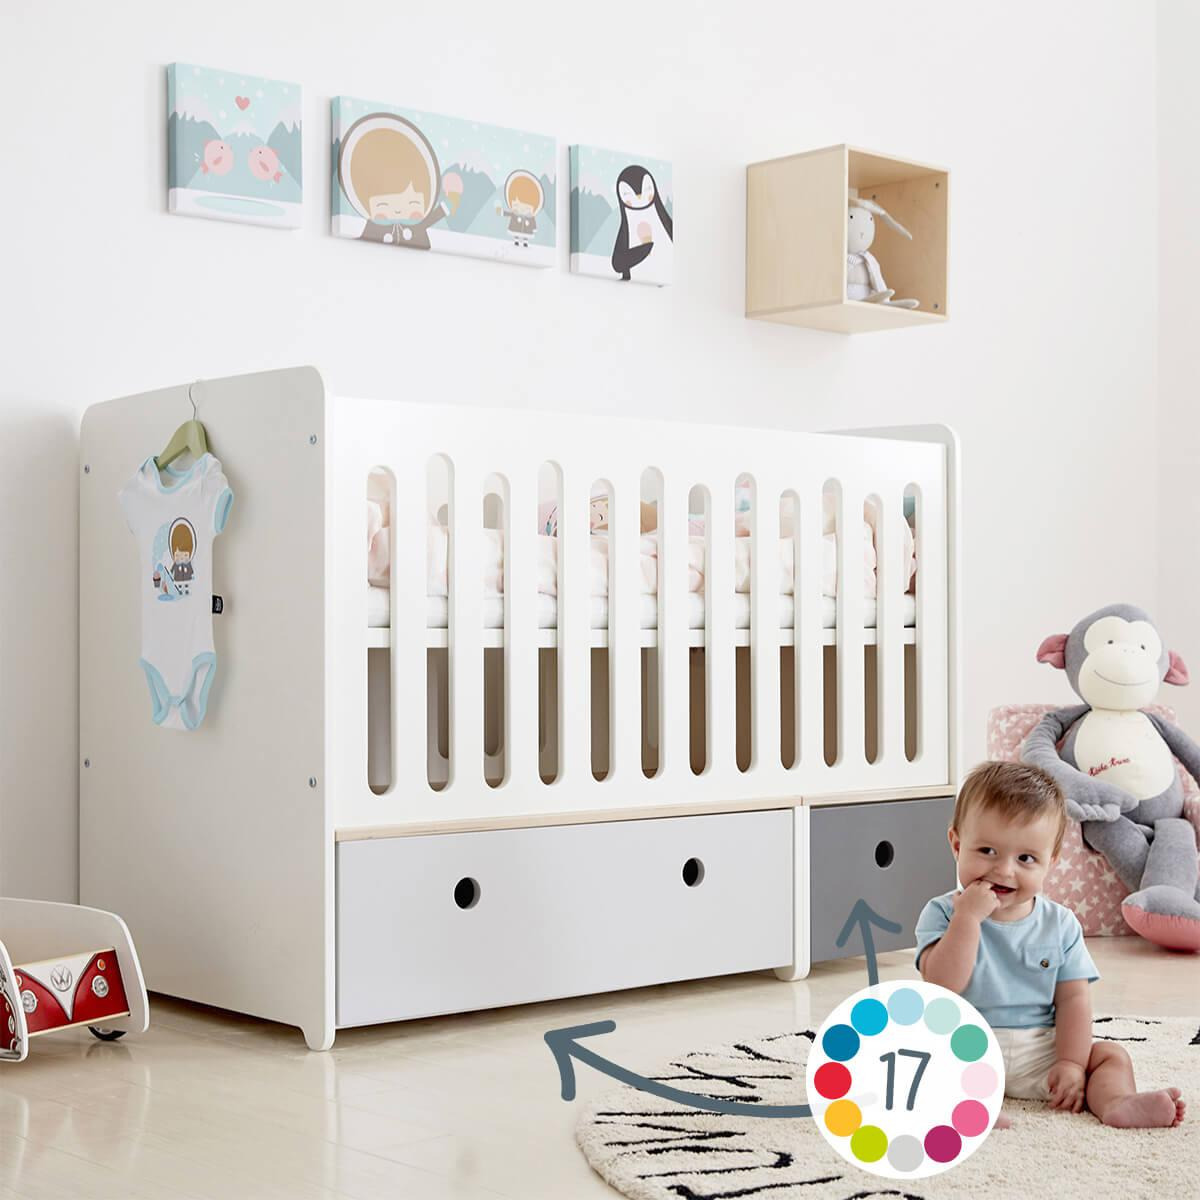 Lit bébé évolutif 70x140cm COLORFLEX Abitare Kids space grey-pearl grey